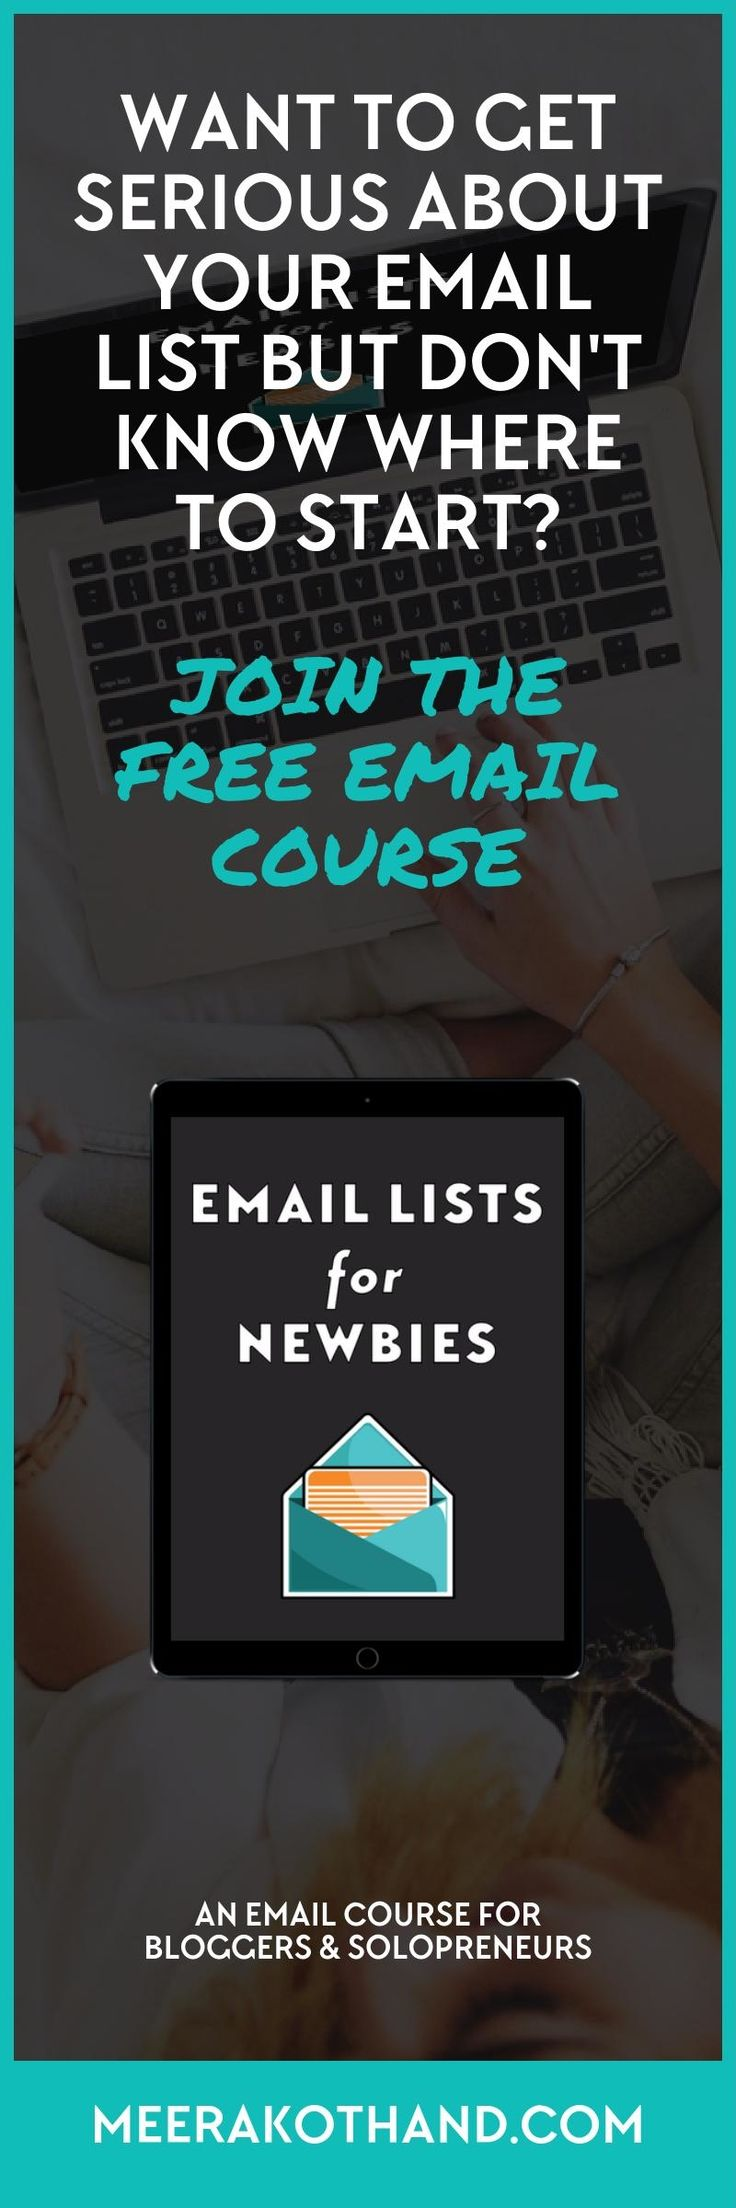 Are you sick to your stomach at the thought of sending emails to your list?   You want to get serious about email but you're not sure where to start? Email Lists for Newbies is a free email course for bloggers and solopreneurs to get started with email lists even if you have a tiny list or have not sent a single email. Click to get the first lesson today.